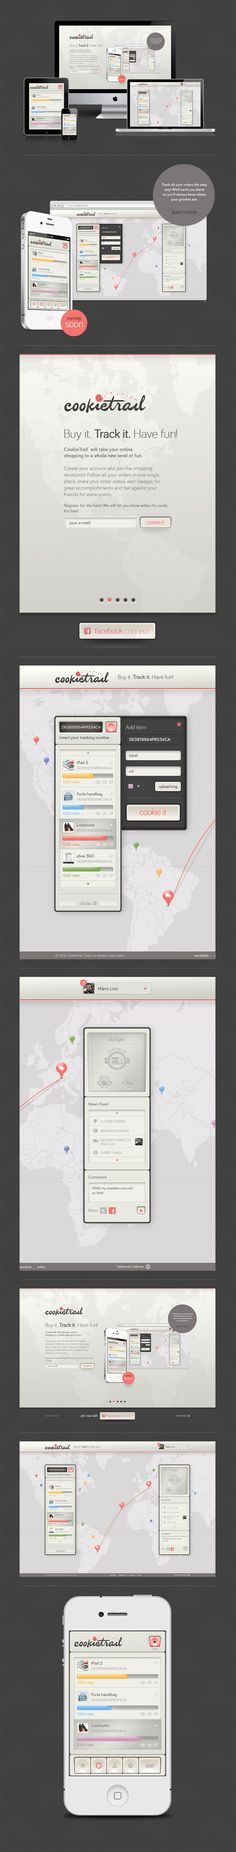 """CookieTrail by James Eduardo, via Behance *** """" With CookieTrail yout can track all your packages in one single place, share your package status, earn badges for great accomplishments and bet against your friends for extra points. """""""